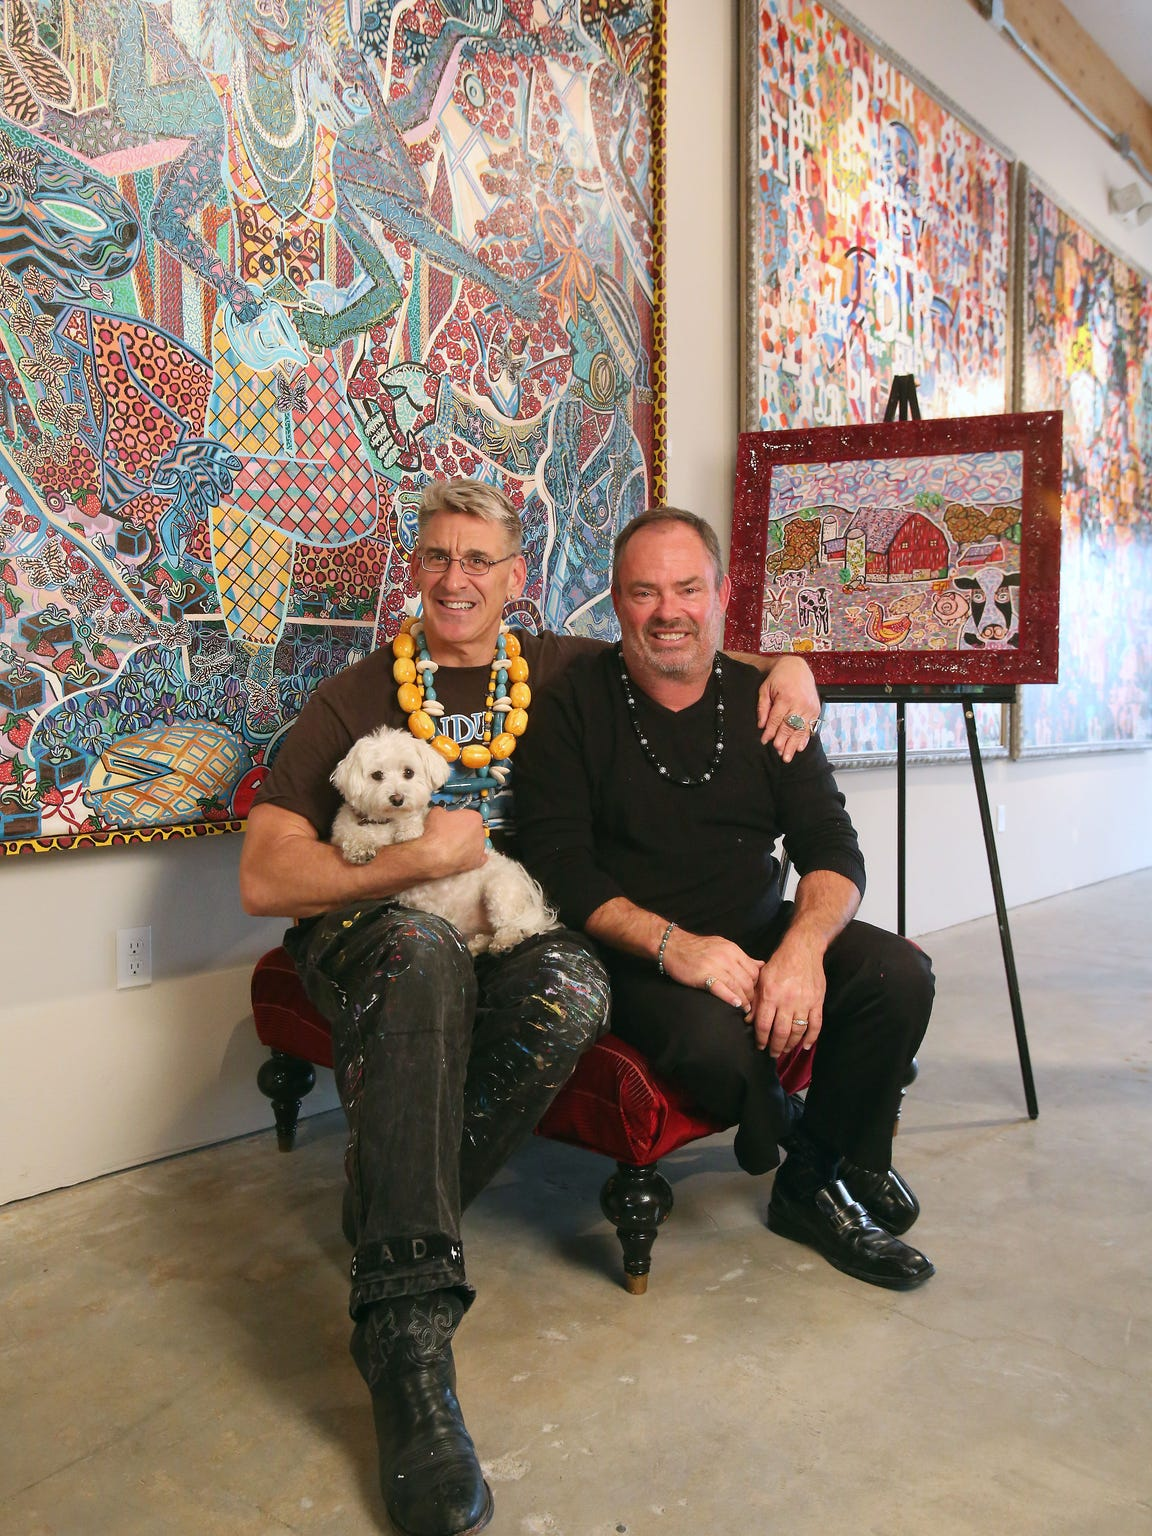 Artists Lon Michels, 52, and Todd Olson, 55, in December in their recently opened art gallery in Palm Springs.